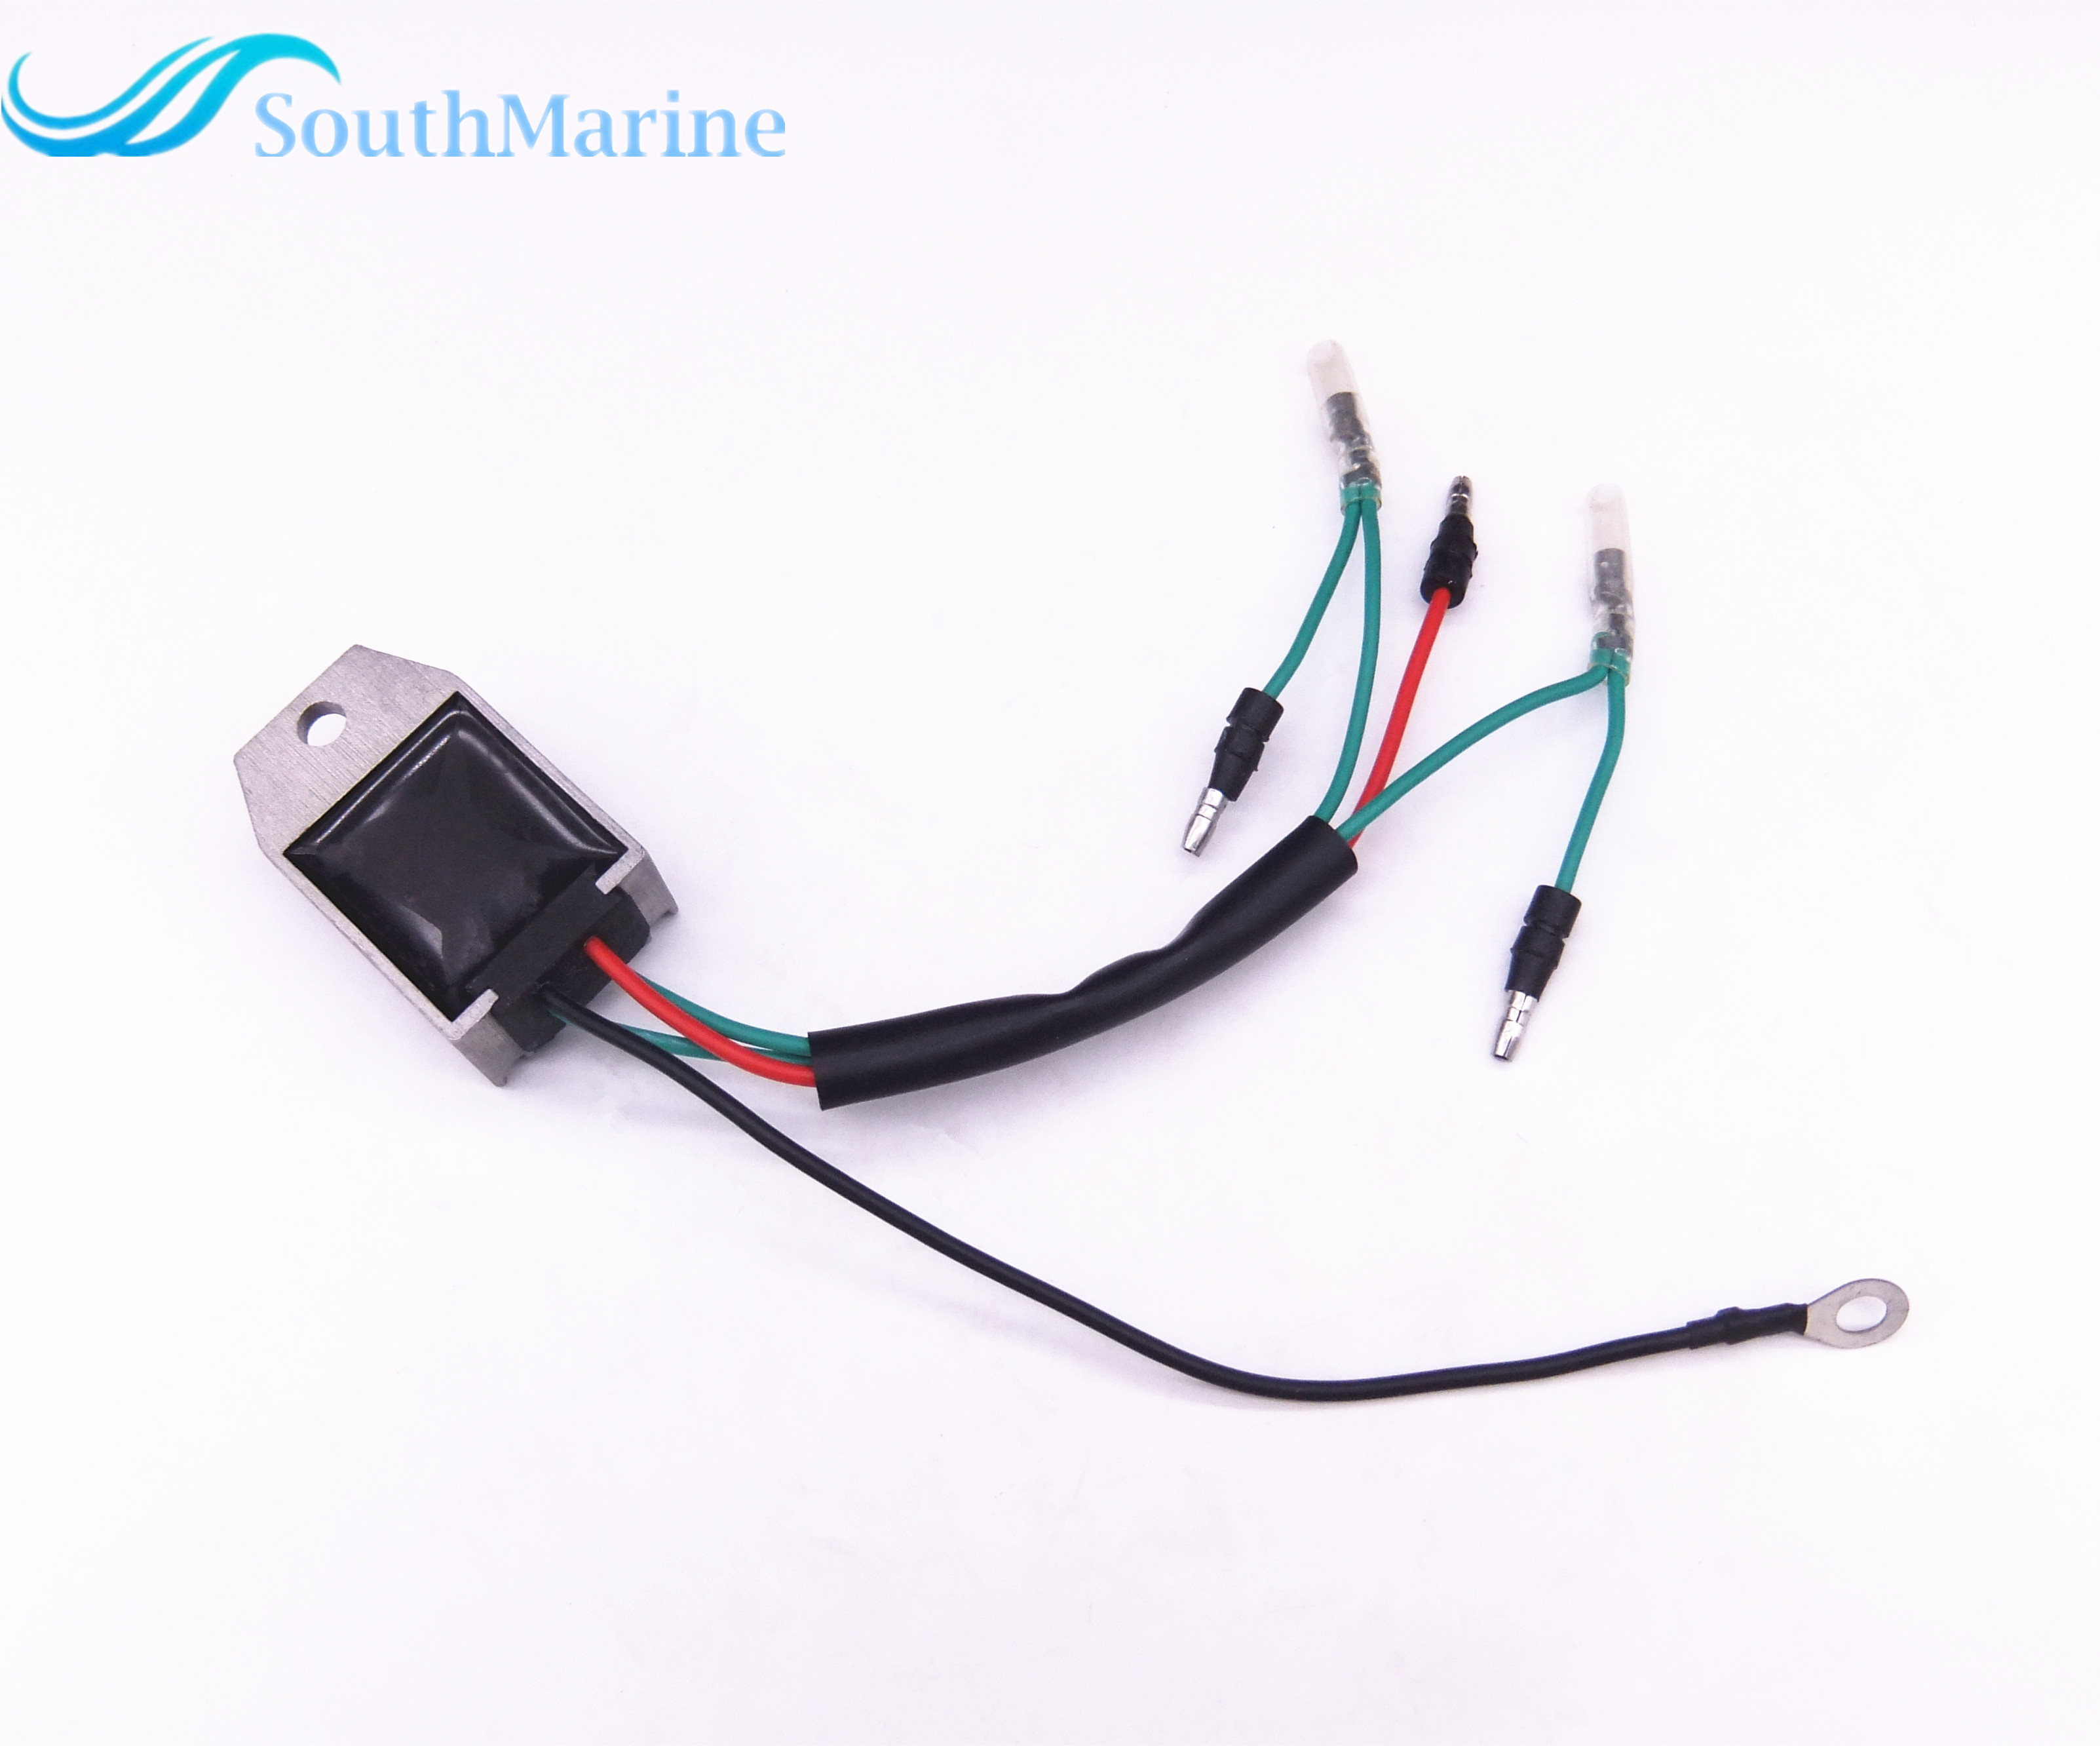 boat motor rectifier regulator assy 6j8 81960 00 for yamaha outboard motors in boat engine from automobiles motorcycles on aliexpress com alibaba  [ 3205 x 2664 Pixel ]